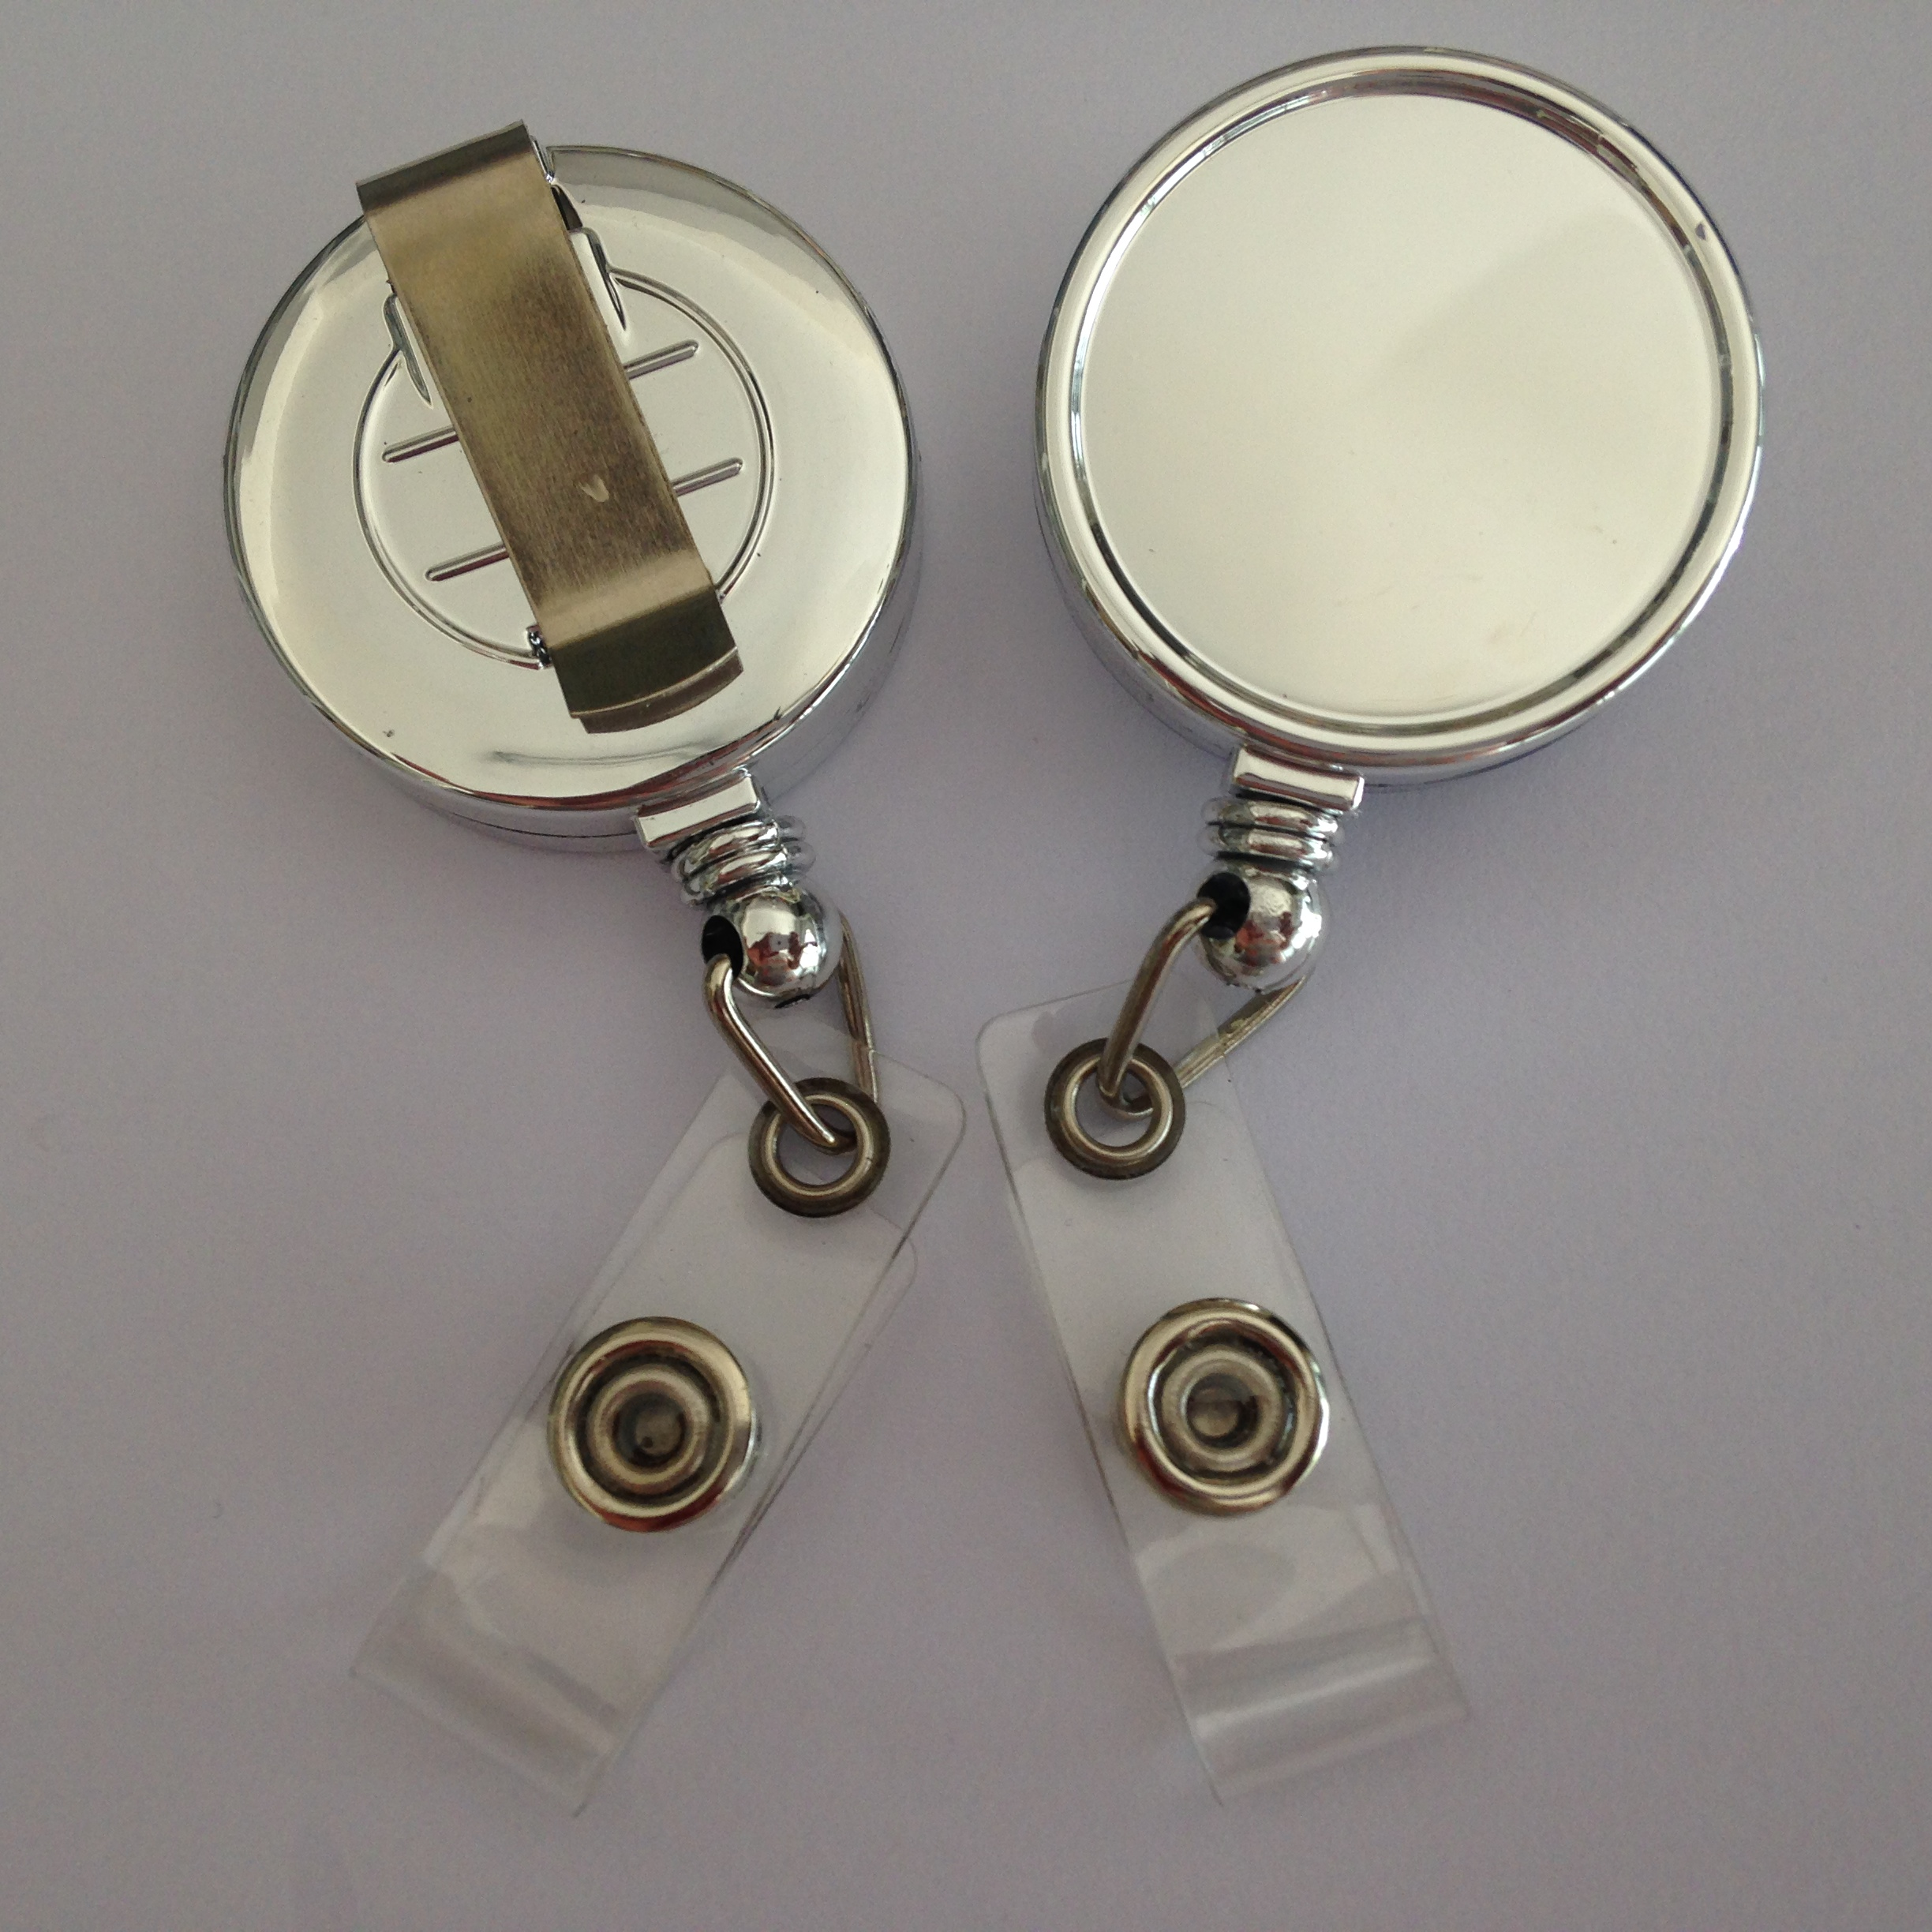 Chrome plate silver color plastic badge holder